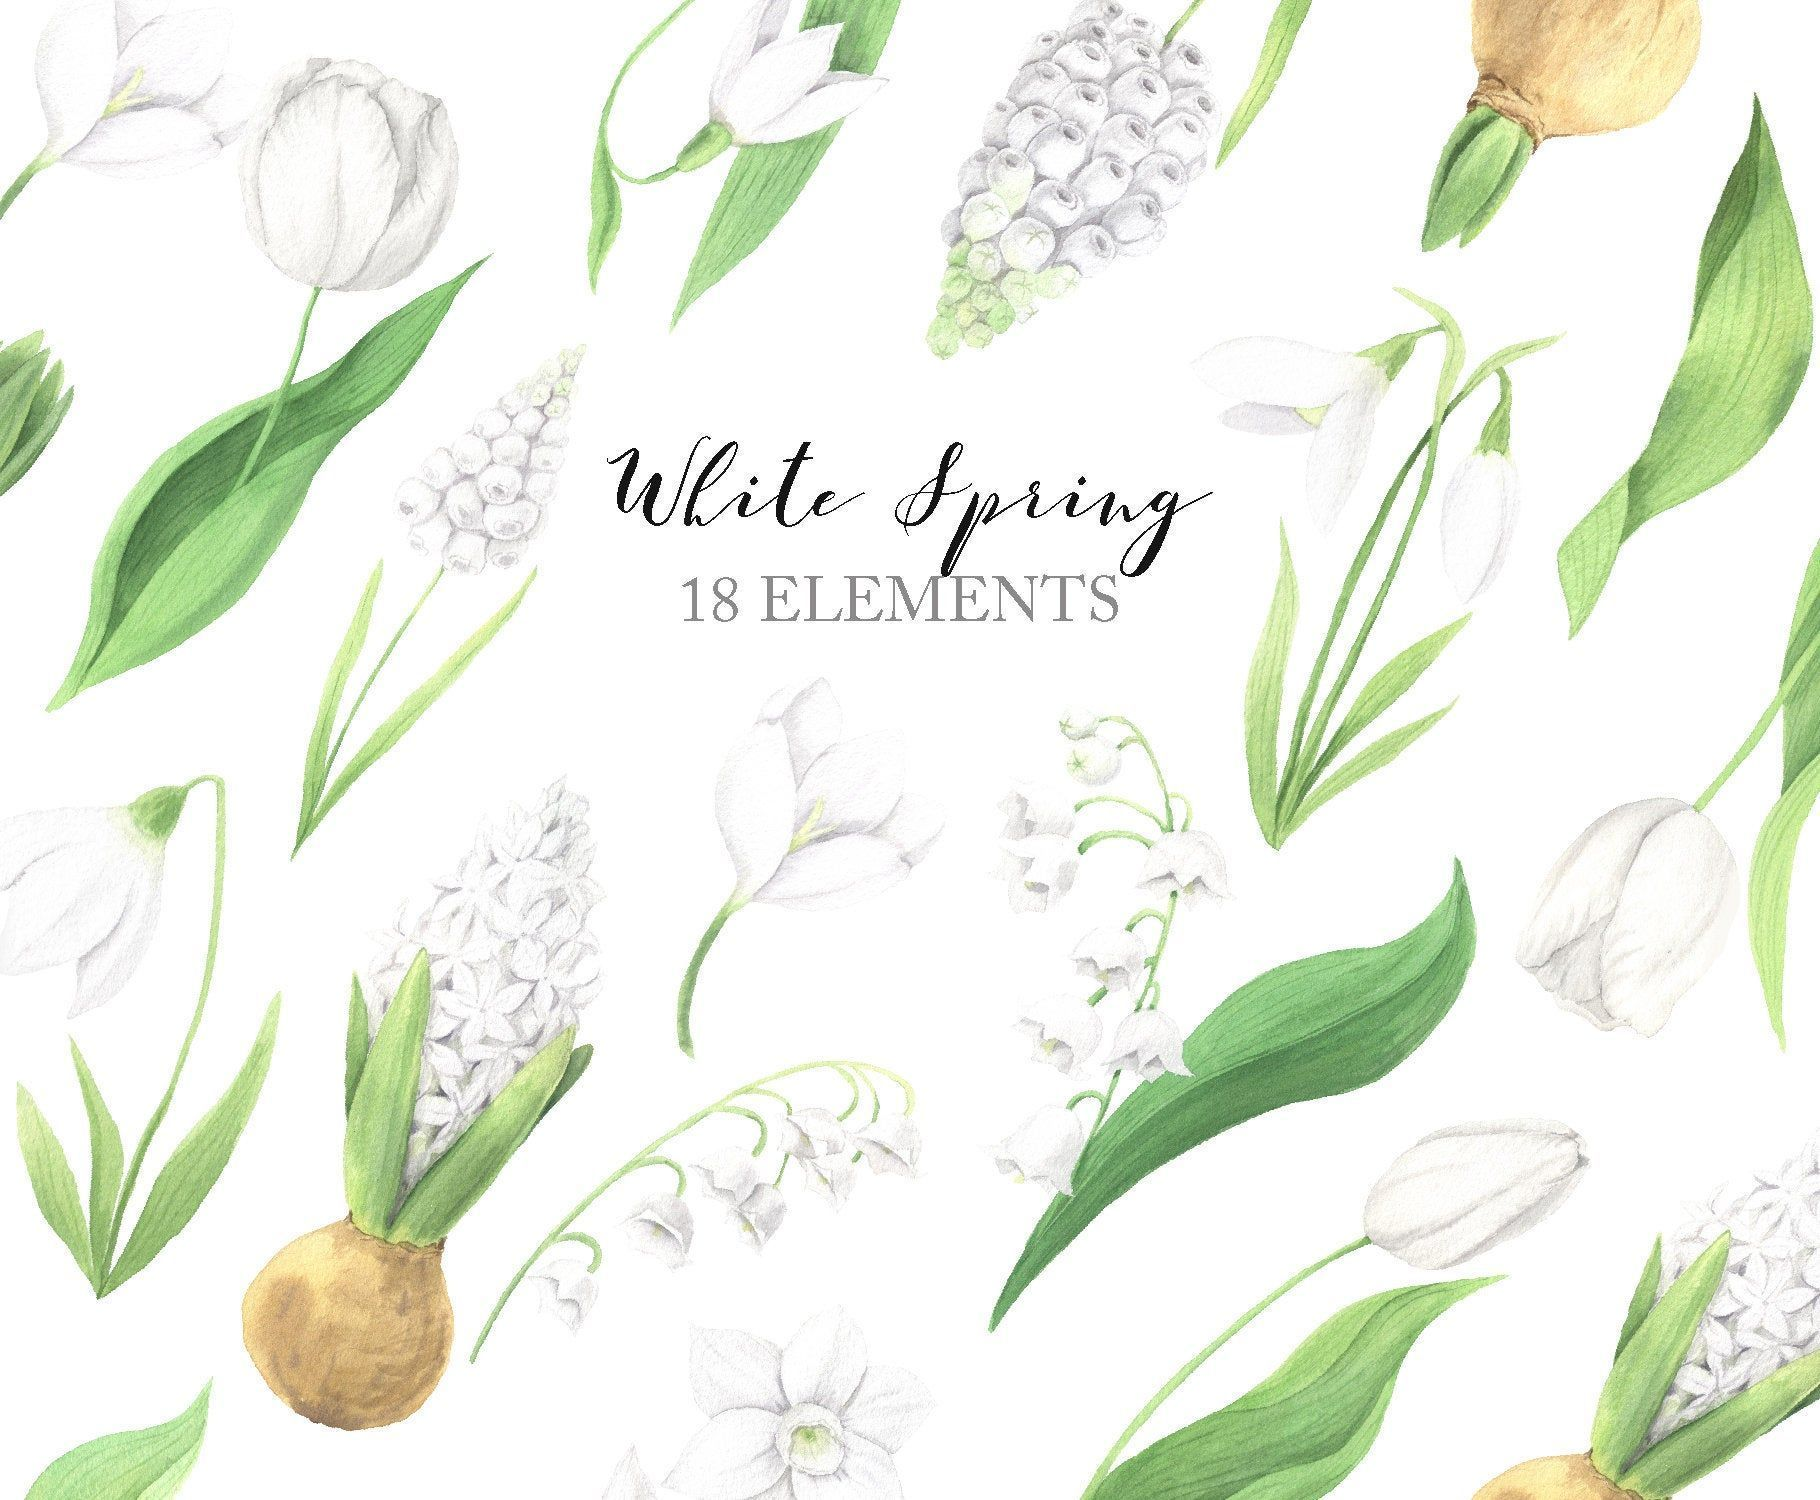 Watercolor Spring Flower Clipart White Tulip Snowdrop Lily Of The Valley Hya Clipart Flower Hya Lily In 2020 Flower Clipart Watercolor Tulips Spring Flowers